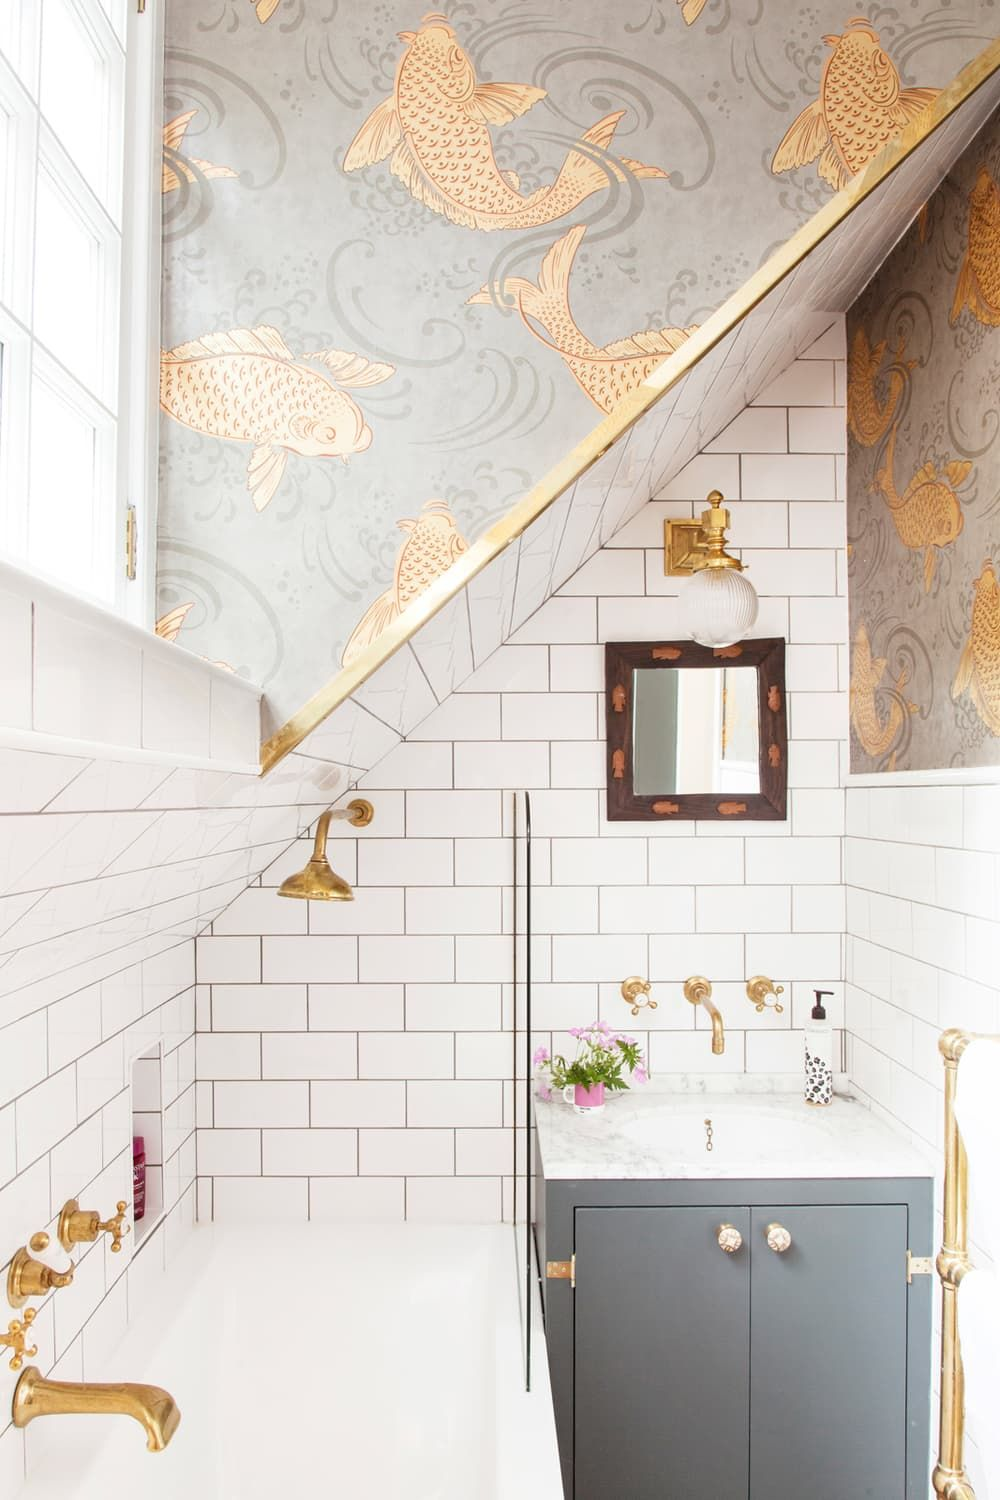 Stylish Remodeling Ideas for Small Bathrooms | WaterCloset ...